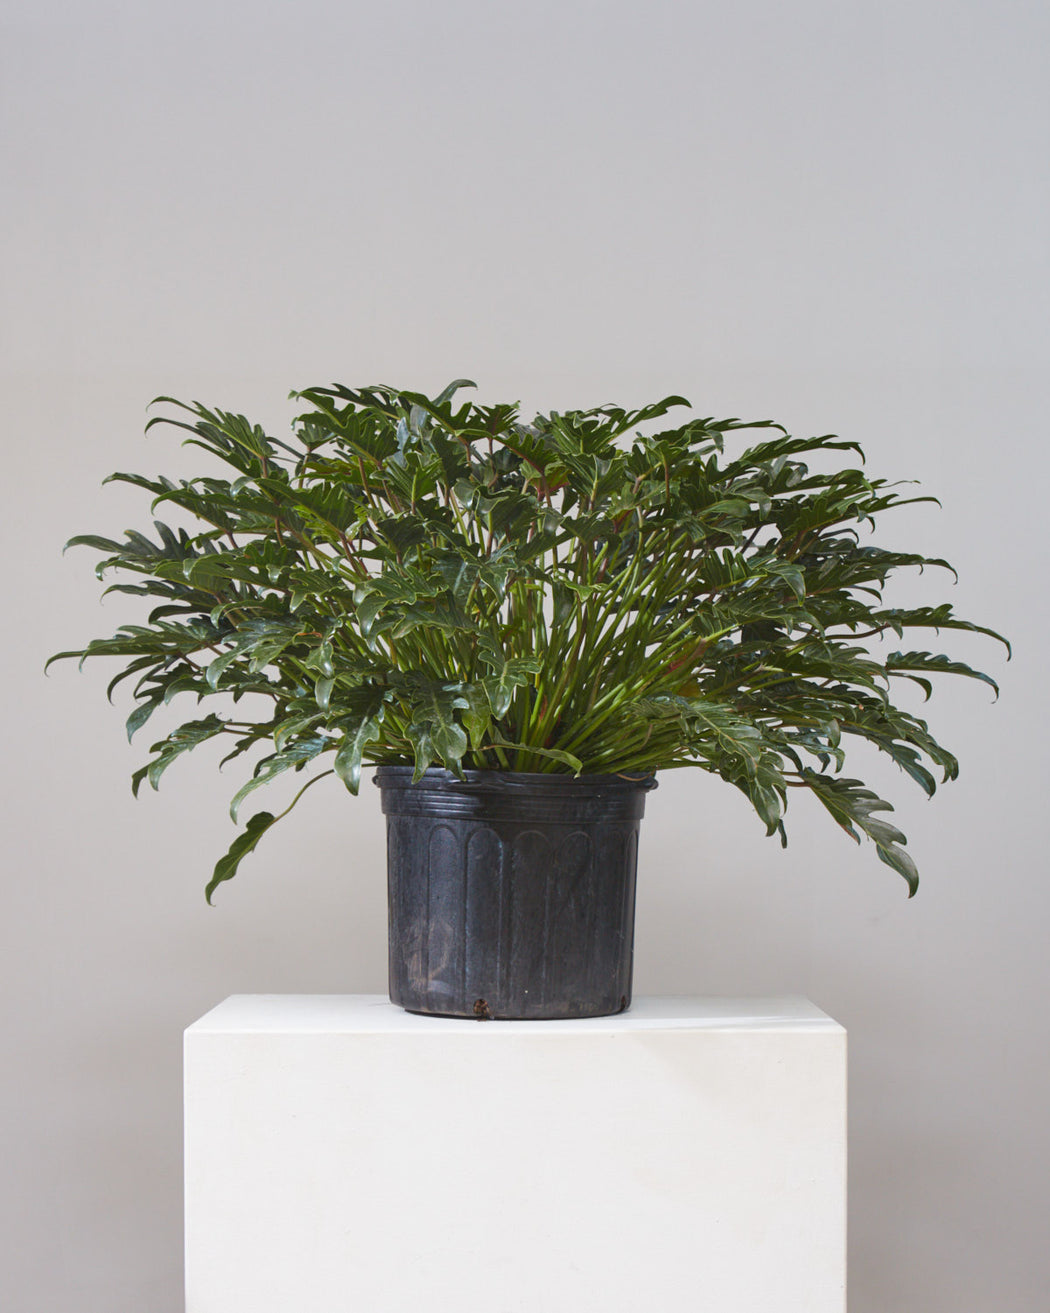 PHILODENDRON XANADU 14 Inch. Grower Pot